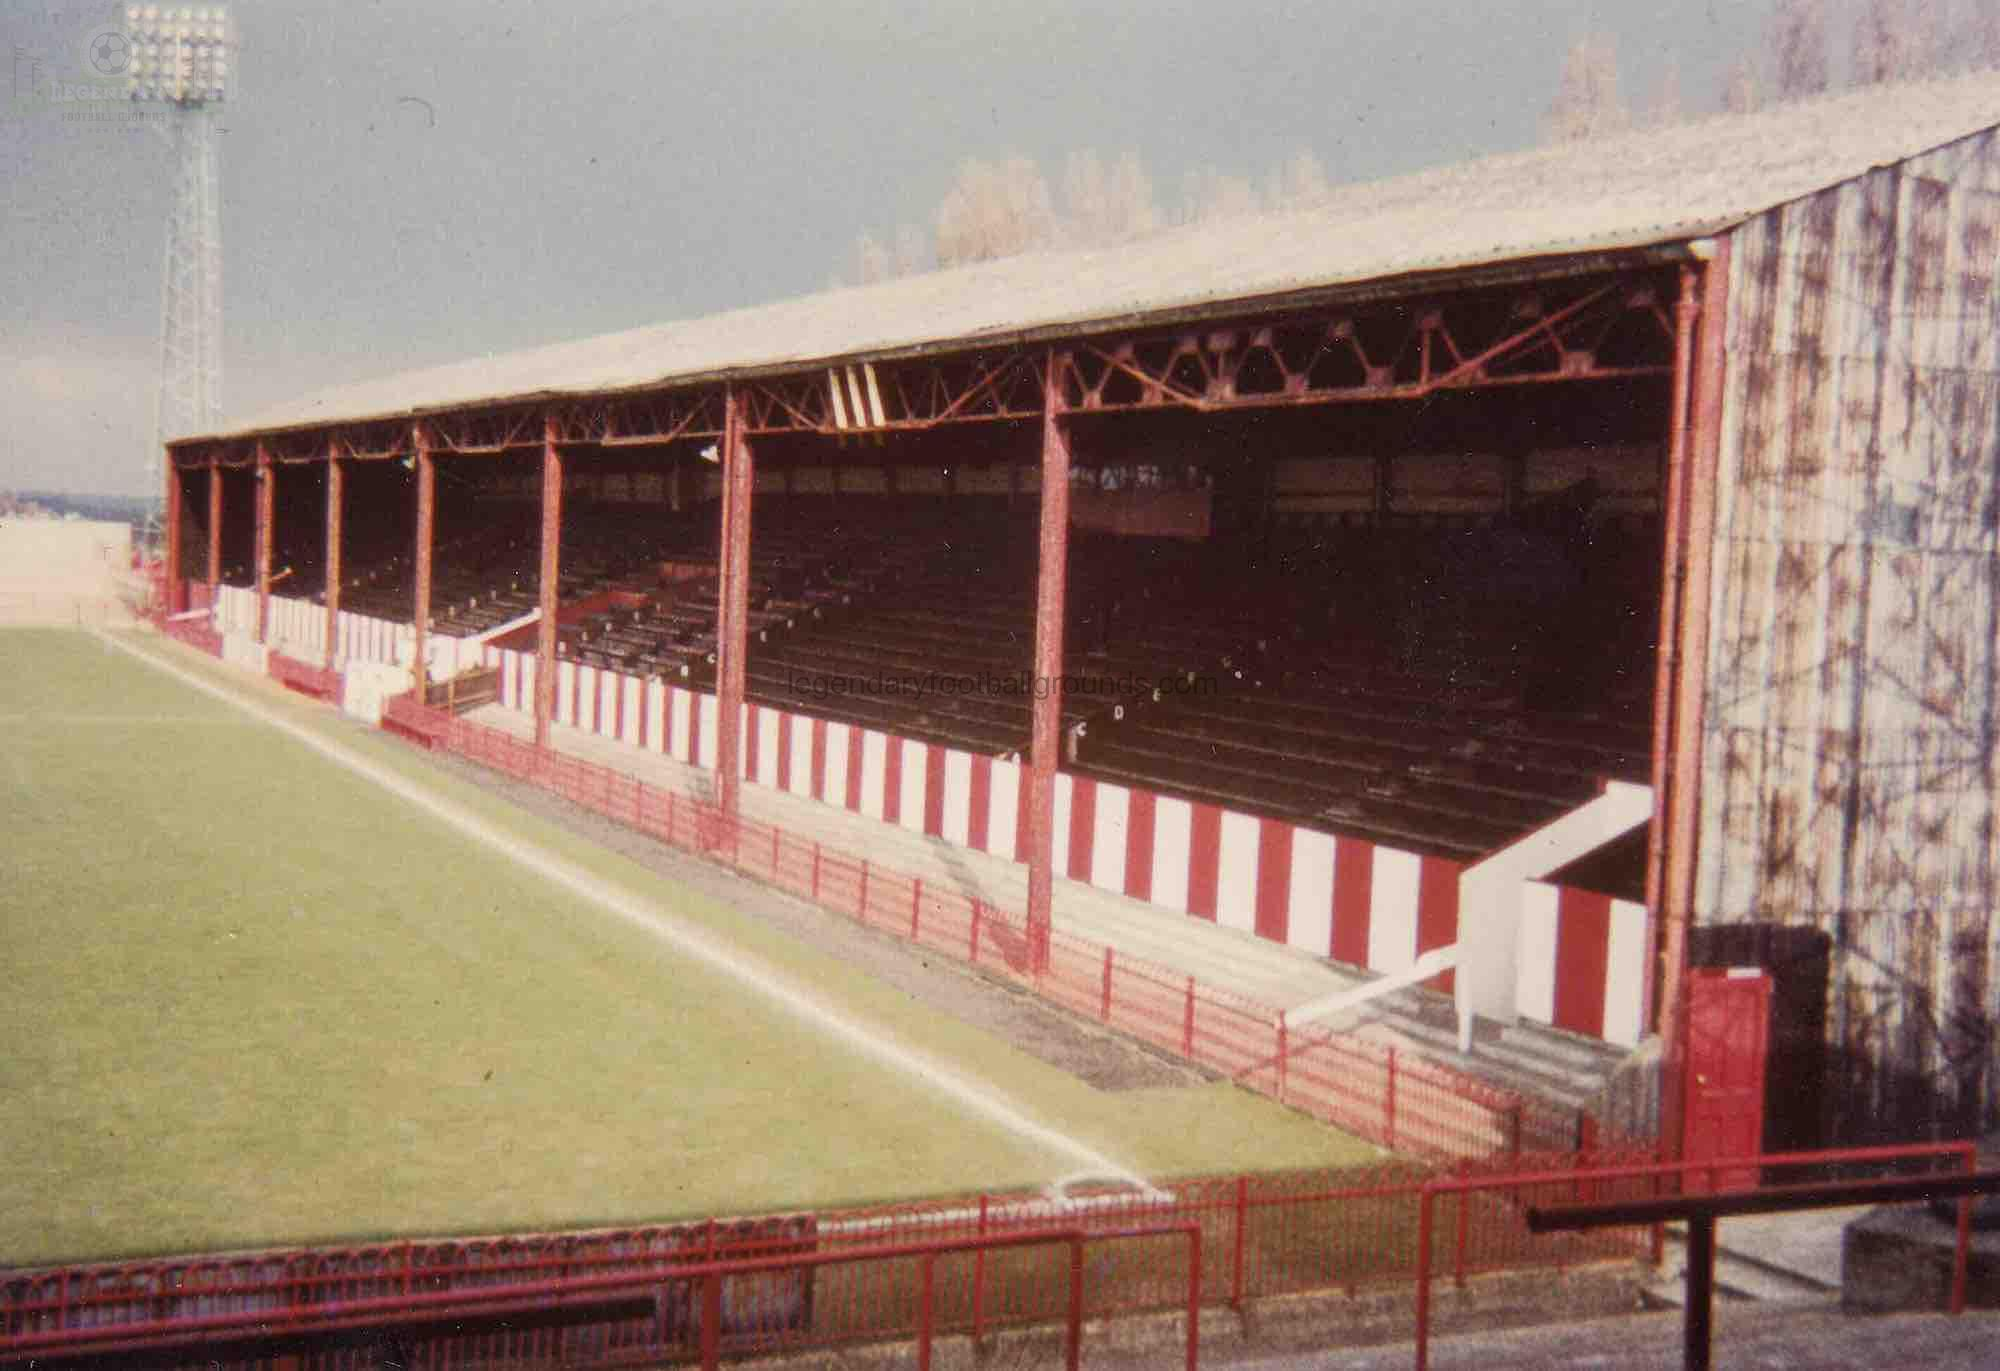 AFC Bournemouth - Dean Court - SE Main Stand 1- late 1970s(1)